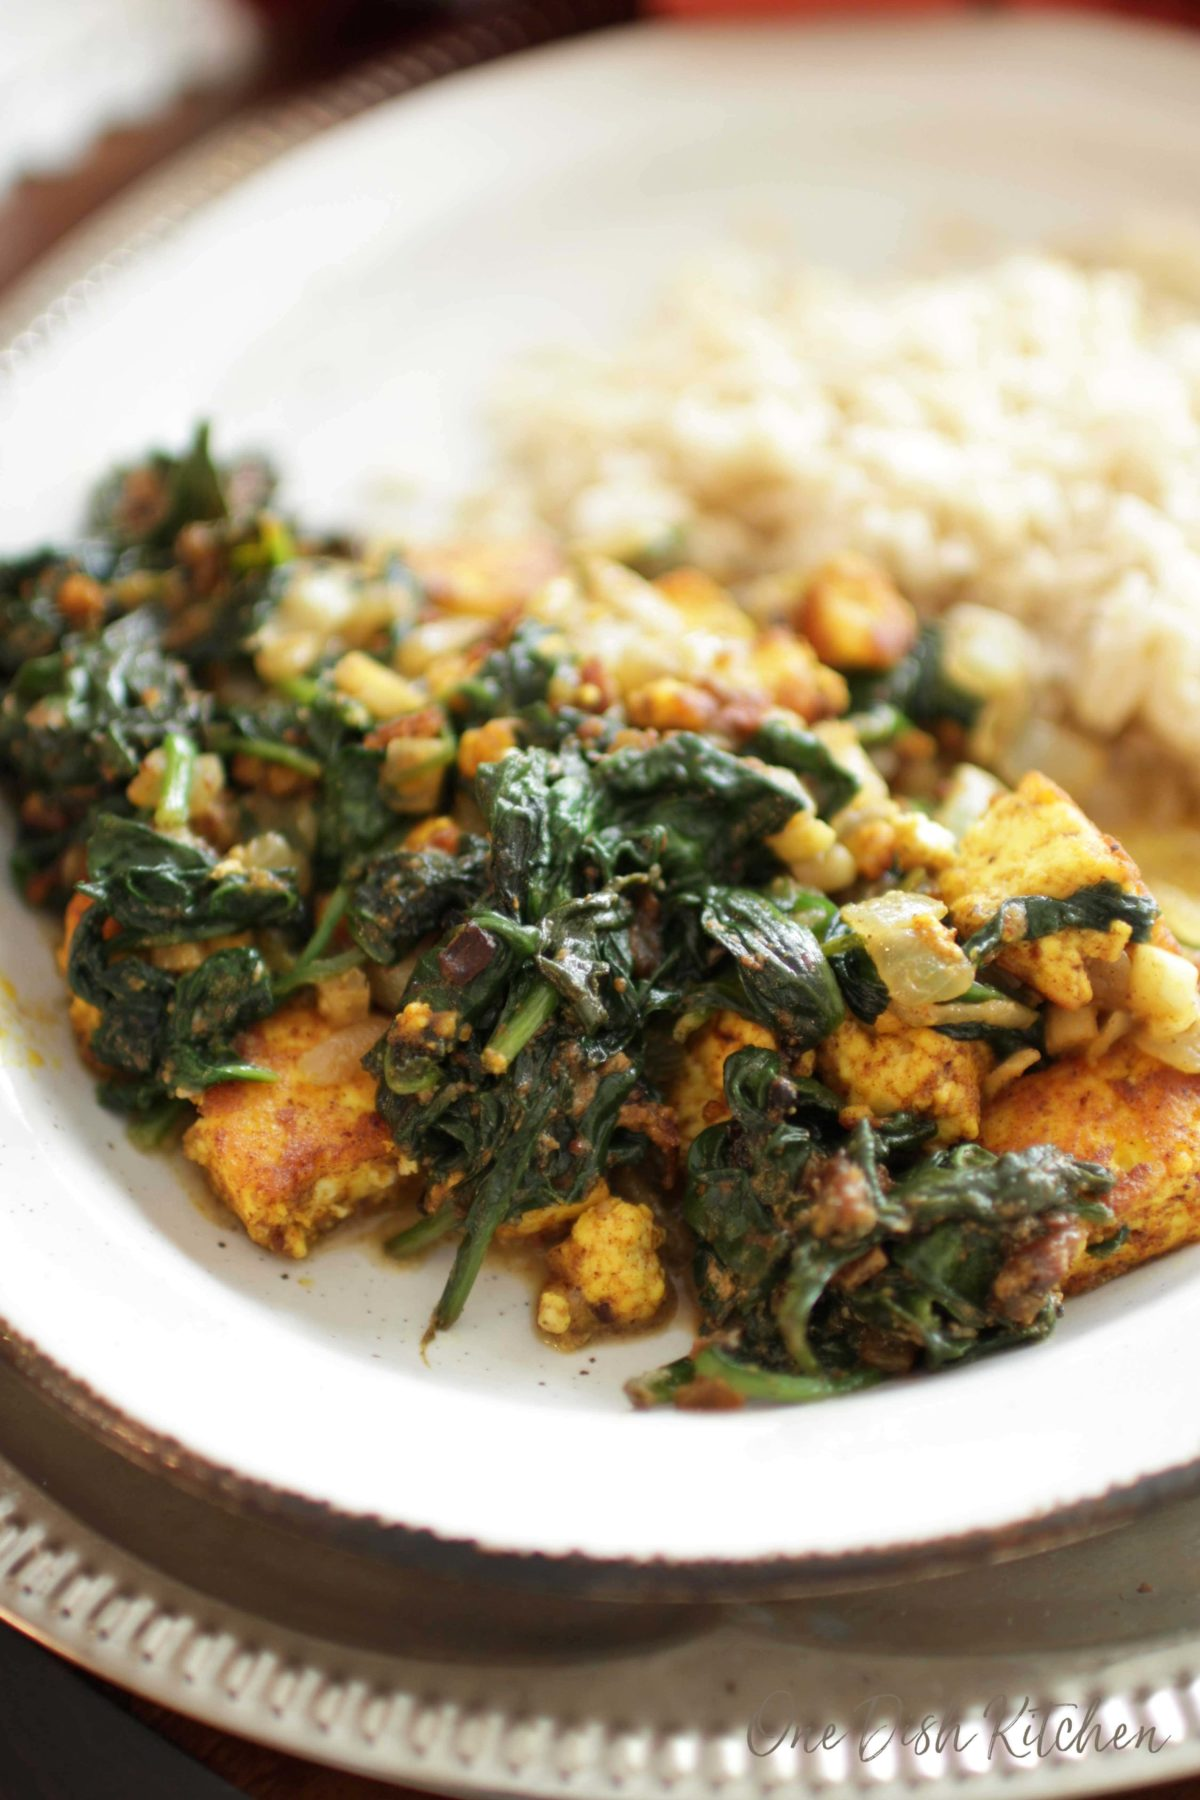 saag paneer next to a plate of rice.